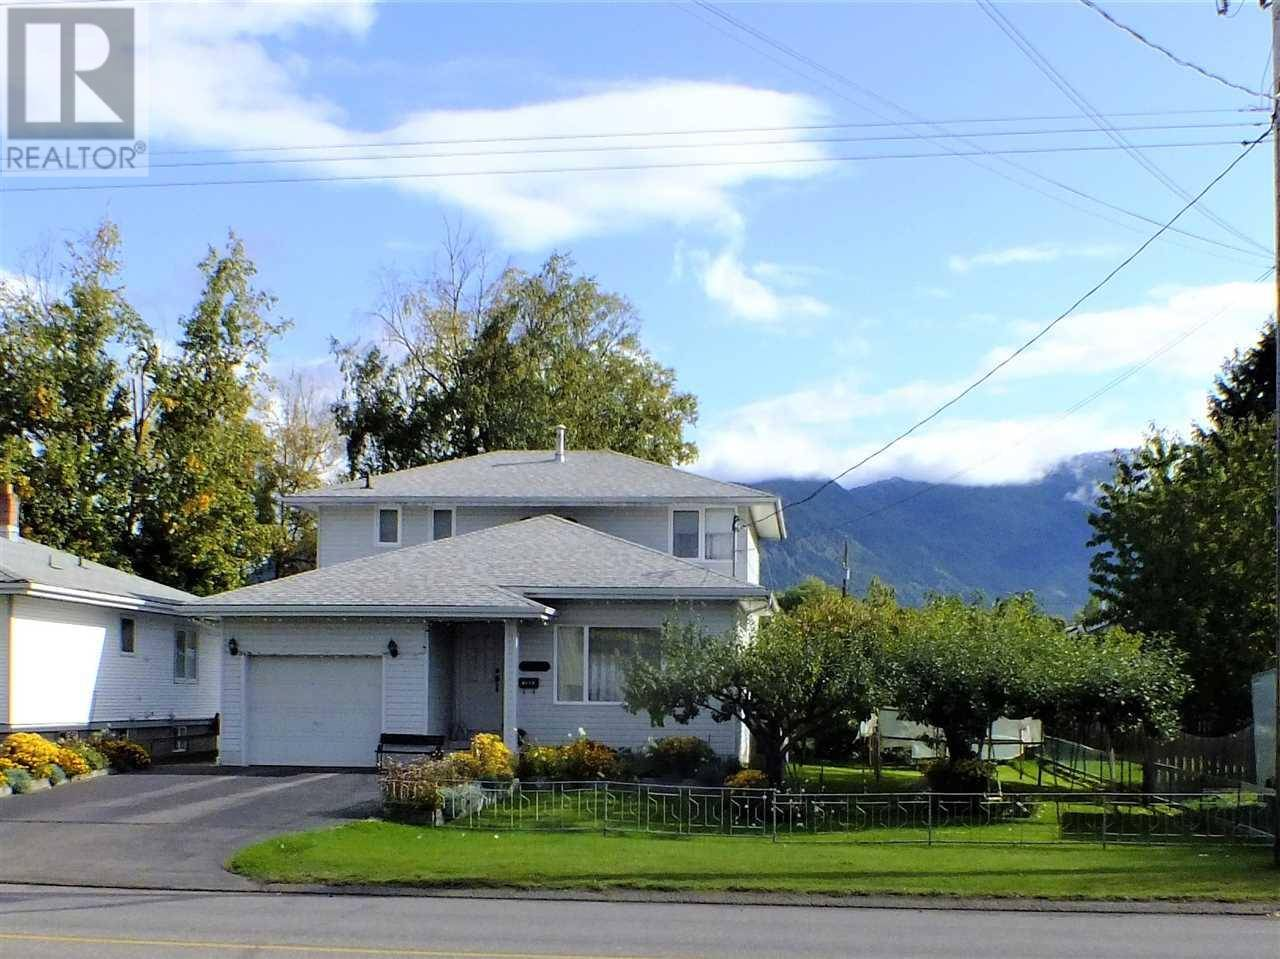 House for sale at 2802 Kalum St Terrace British Columbia - MLS: R2409644